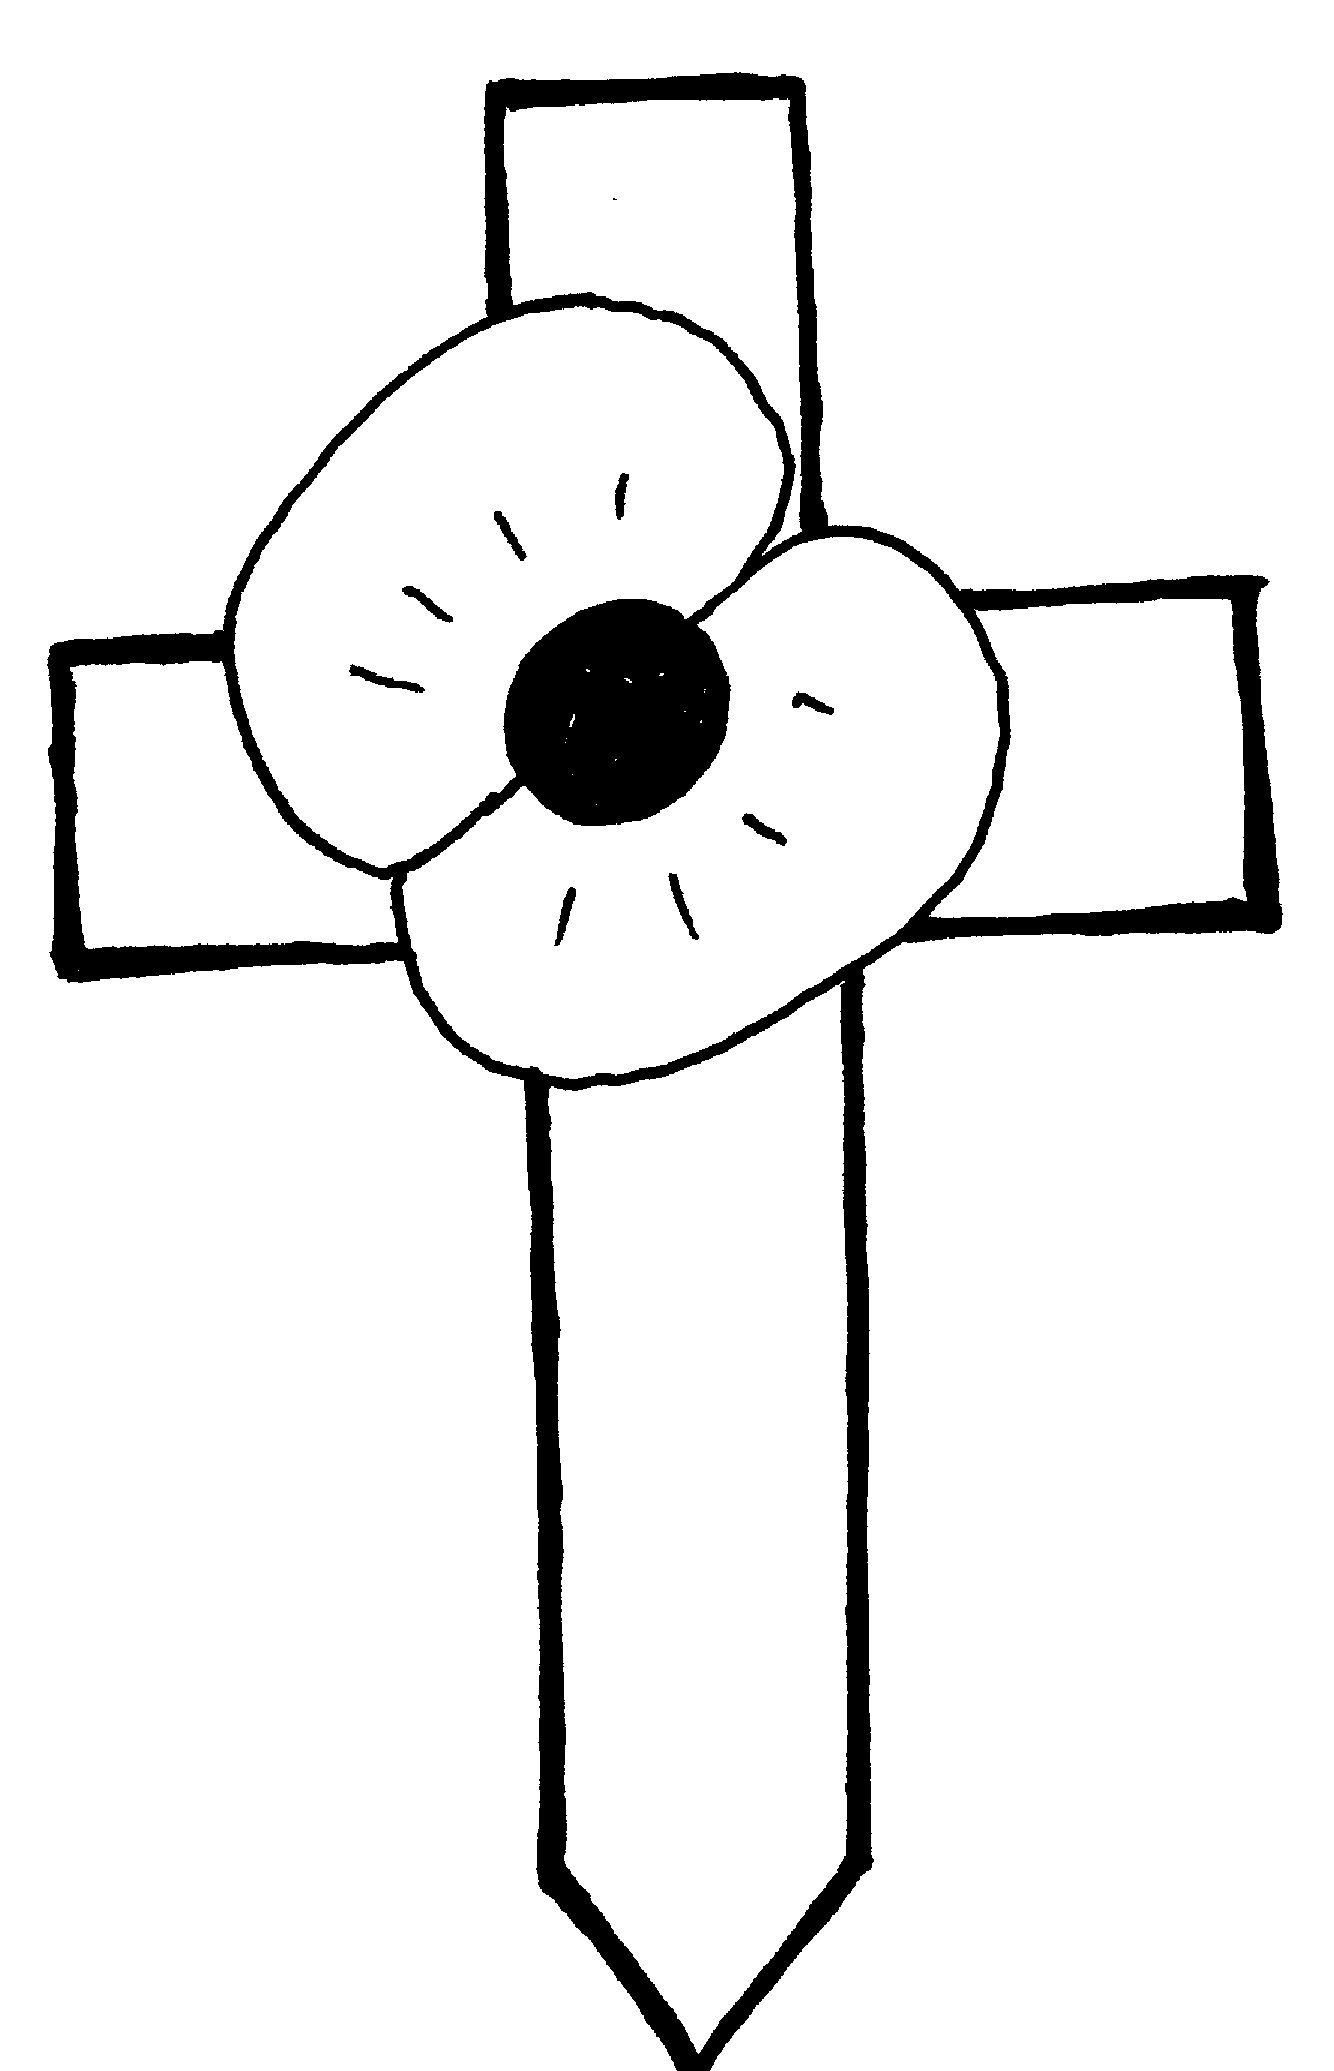 hight resolution of 37 awesome memorial day poppy clipart